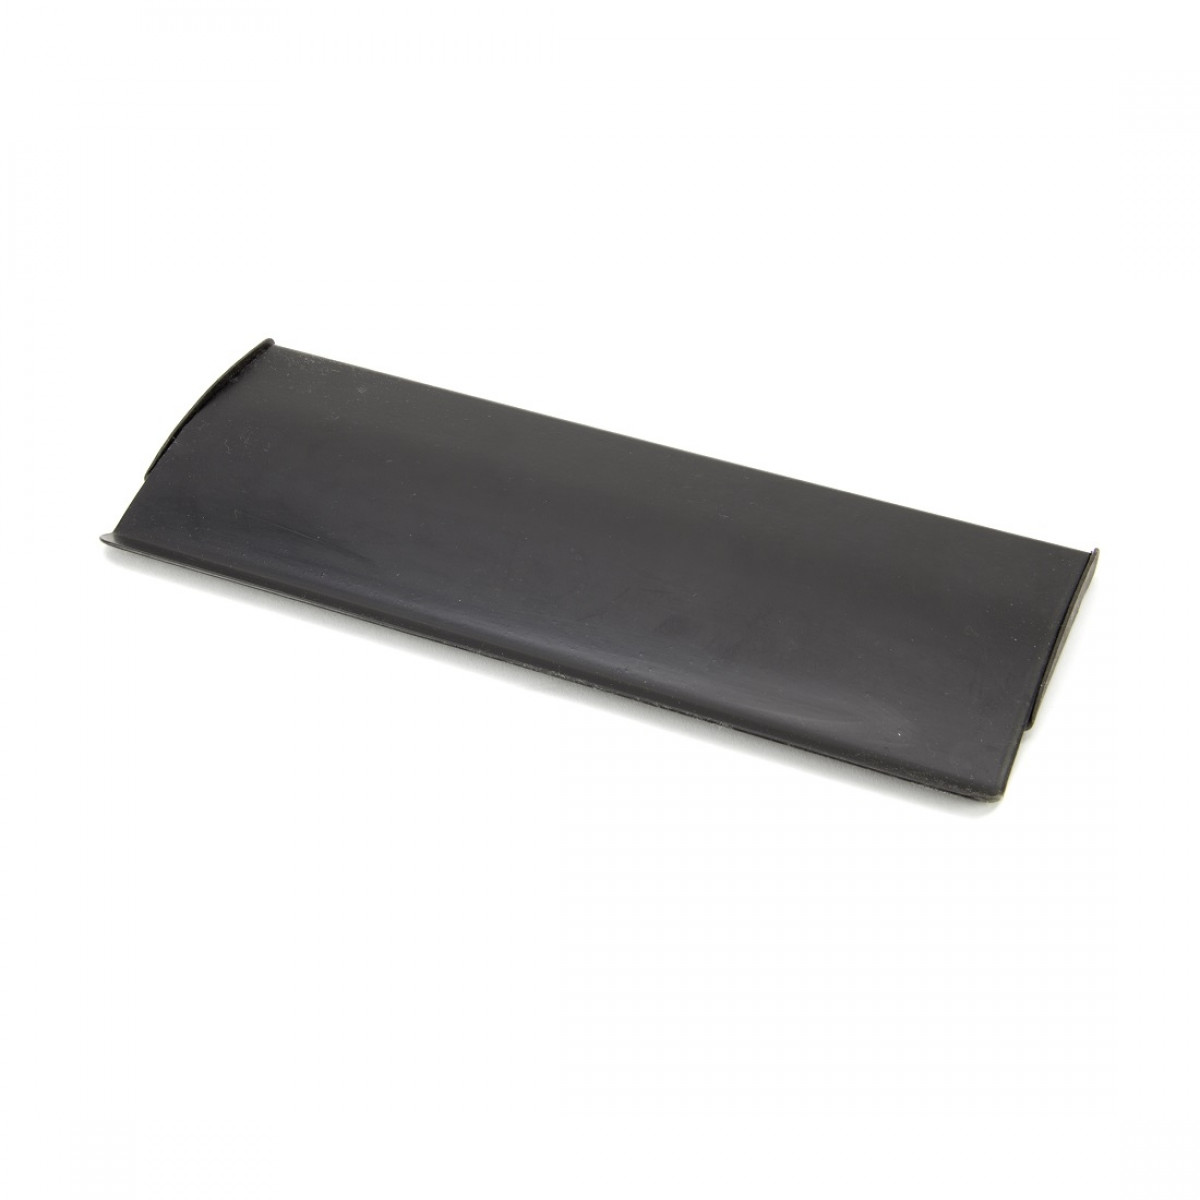 From The Anvil Small Letterplate Black